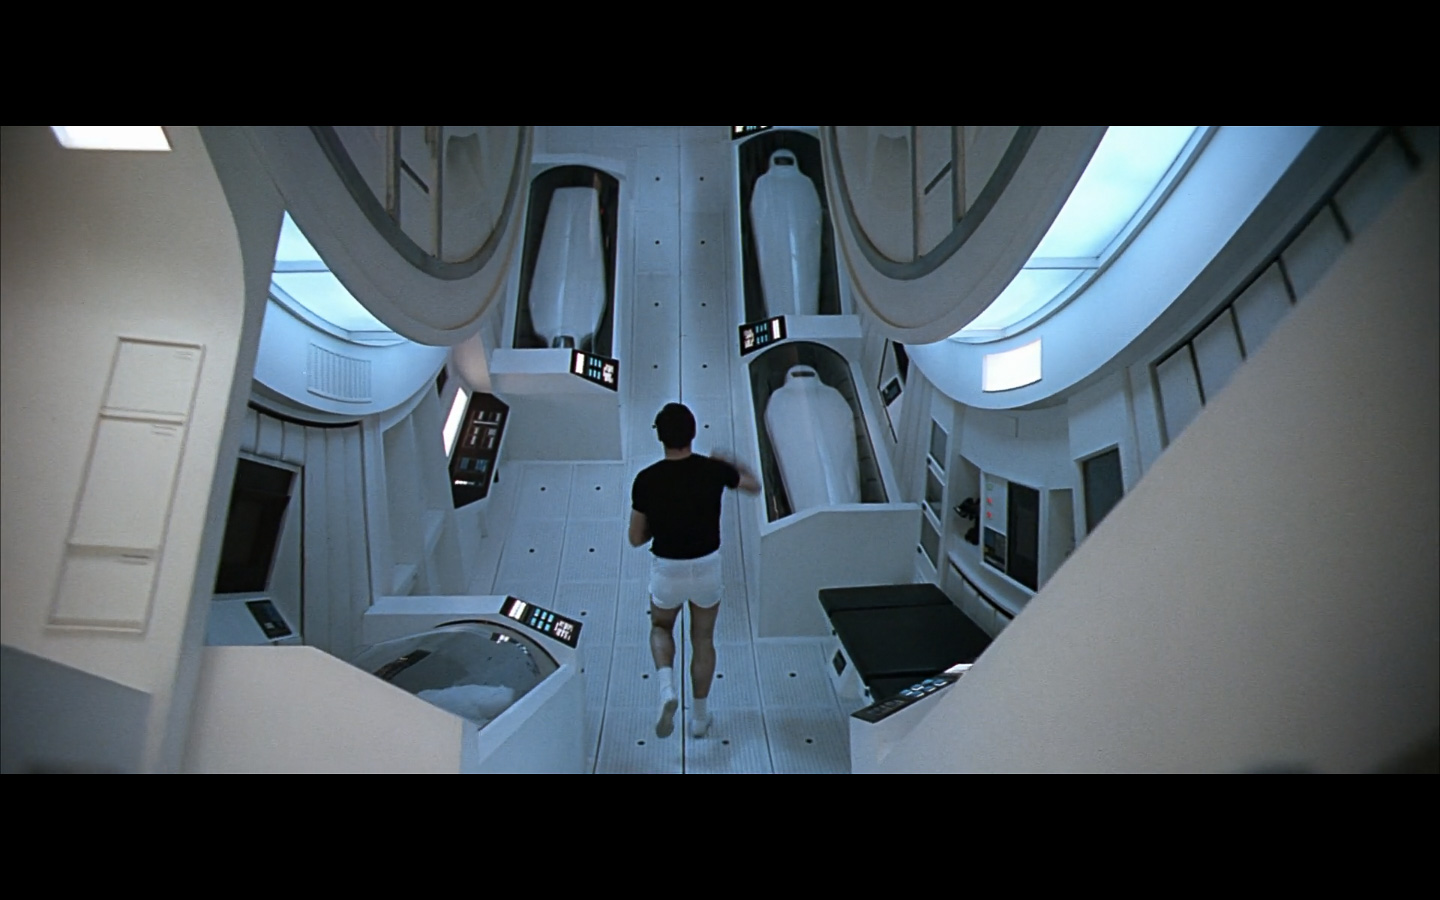 2001 Space Odyssey Cinematography-284